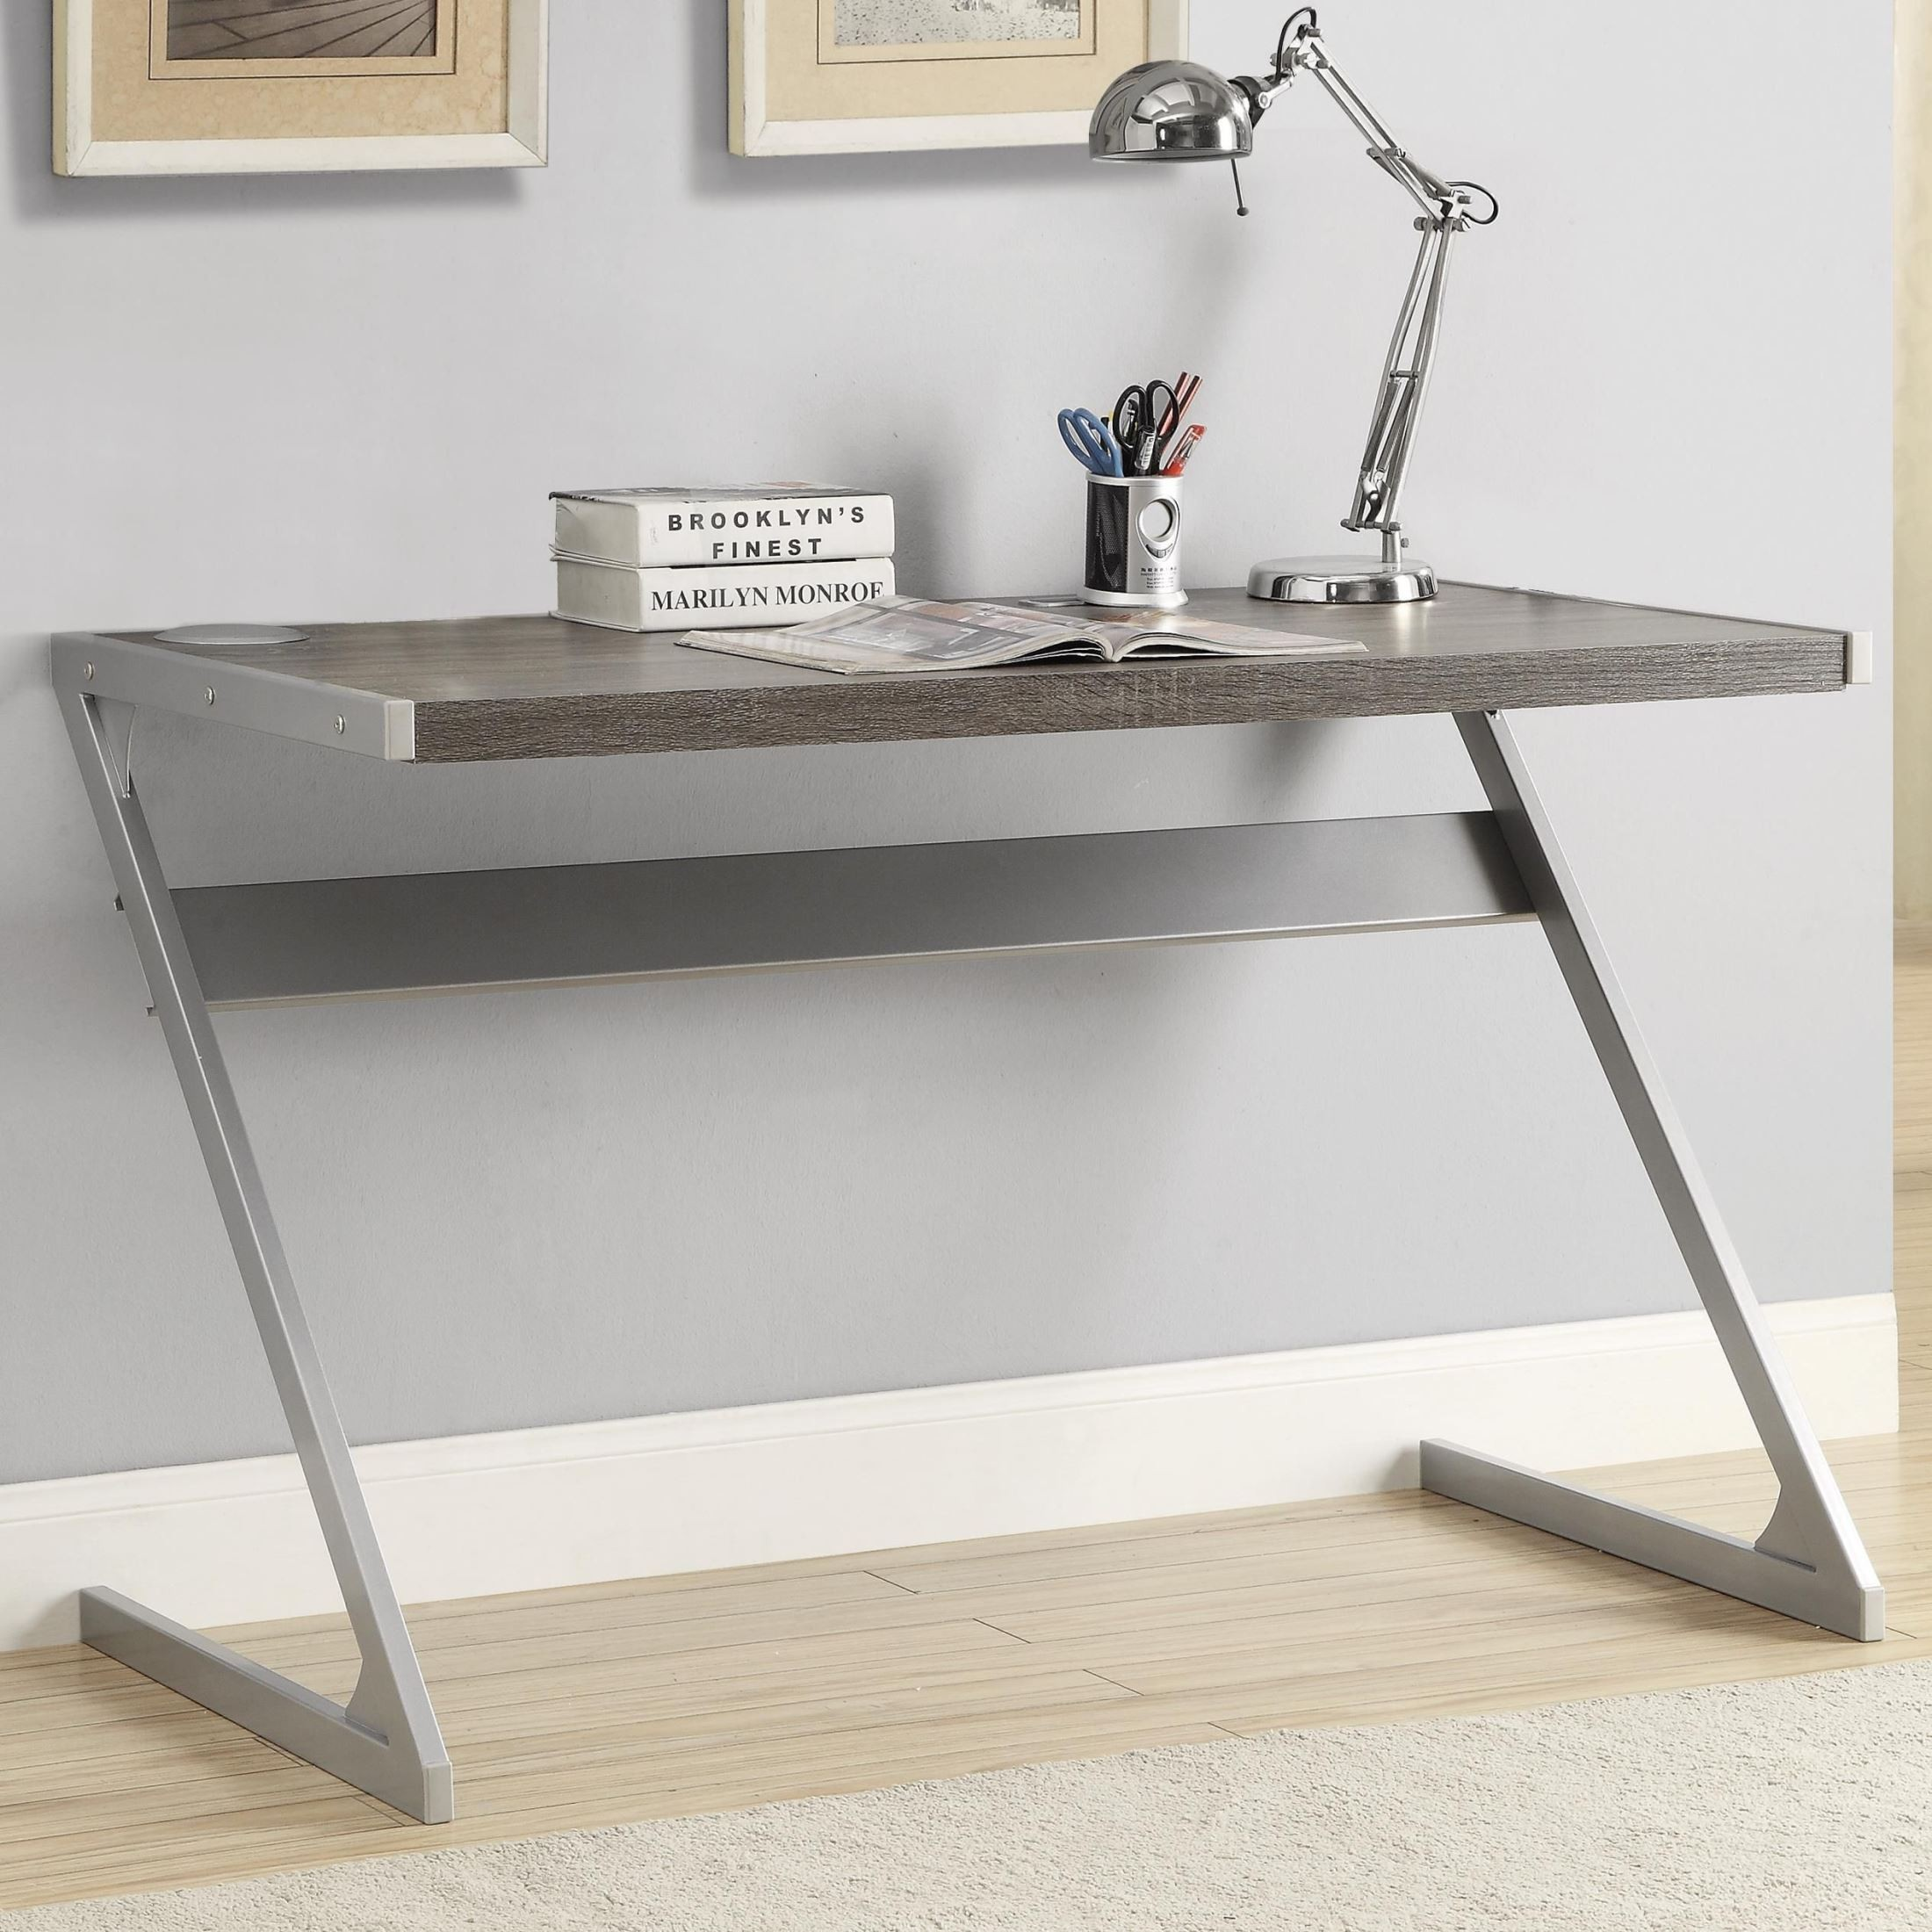 traditional rub office du zm secretary maison hooker with antique desk product l off travial furniture white la gray writing